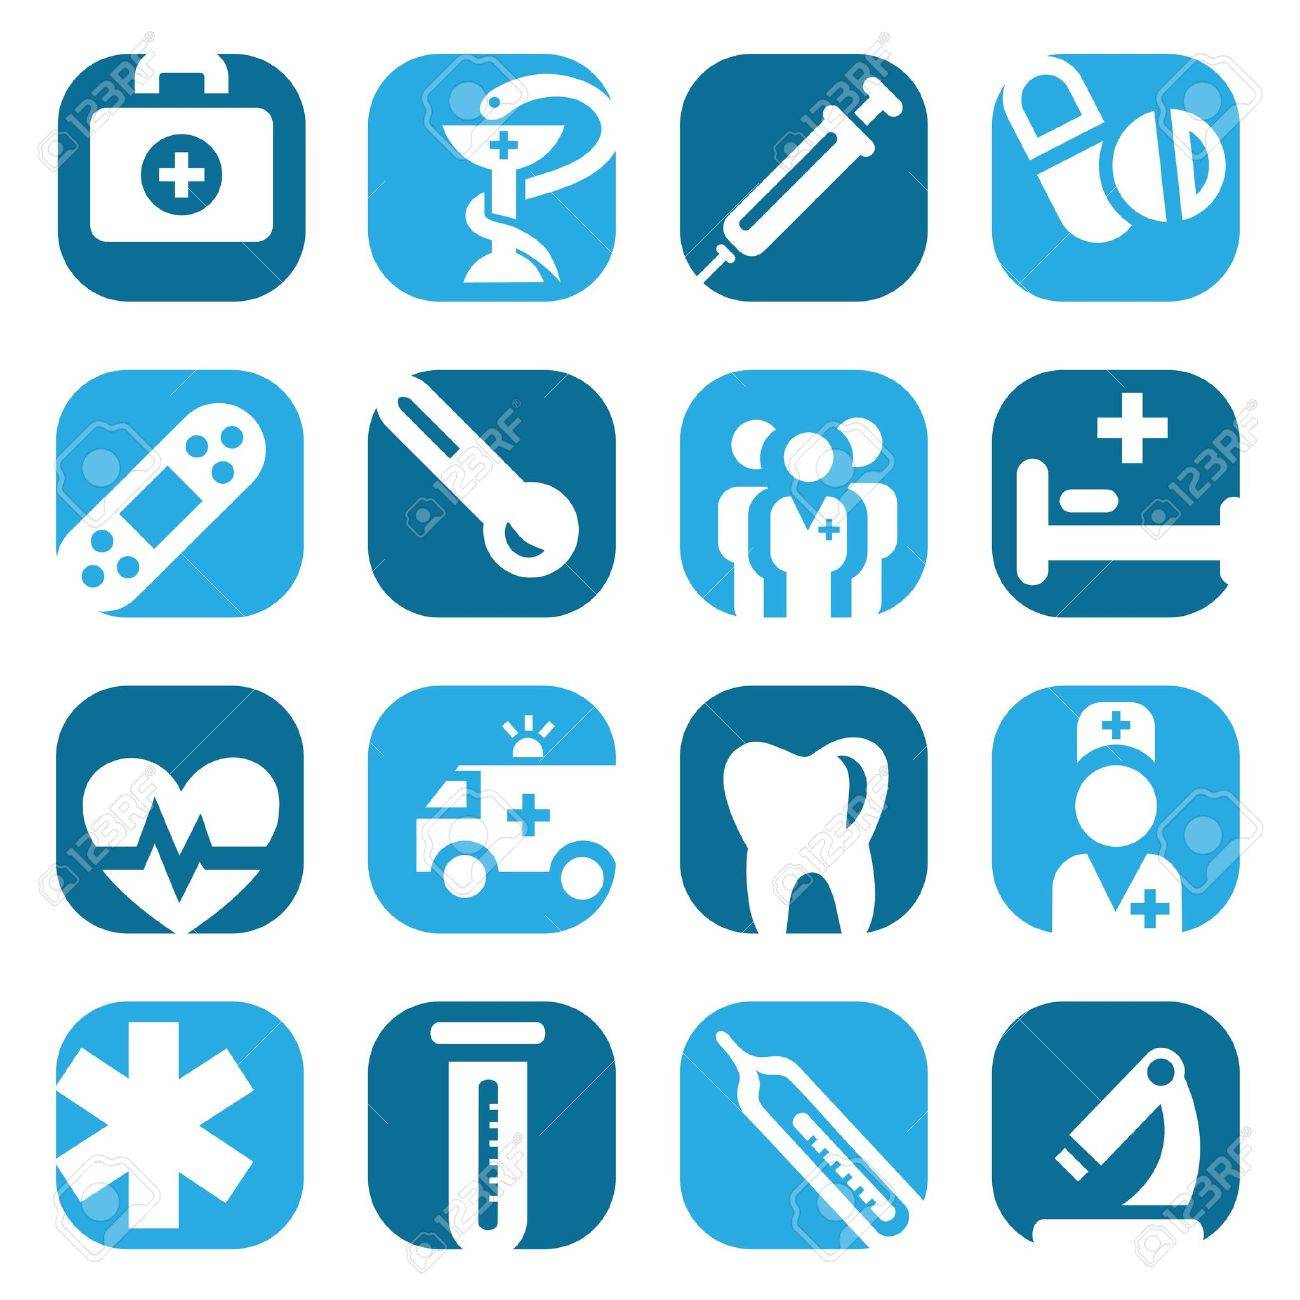 Elegant Colorful Medical Icons Set Created For Mobile, Web And Applications Stock Vector - 18394530